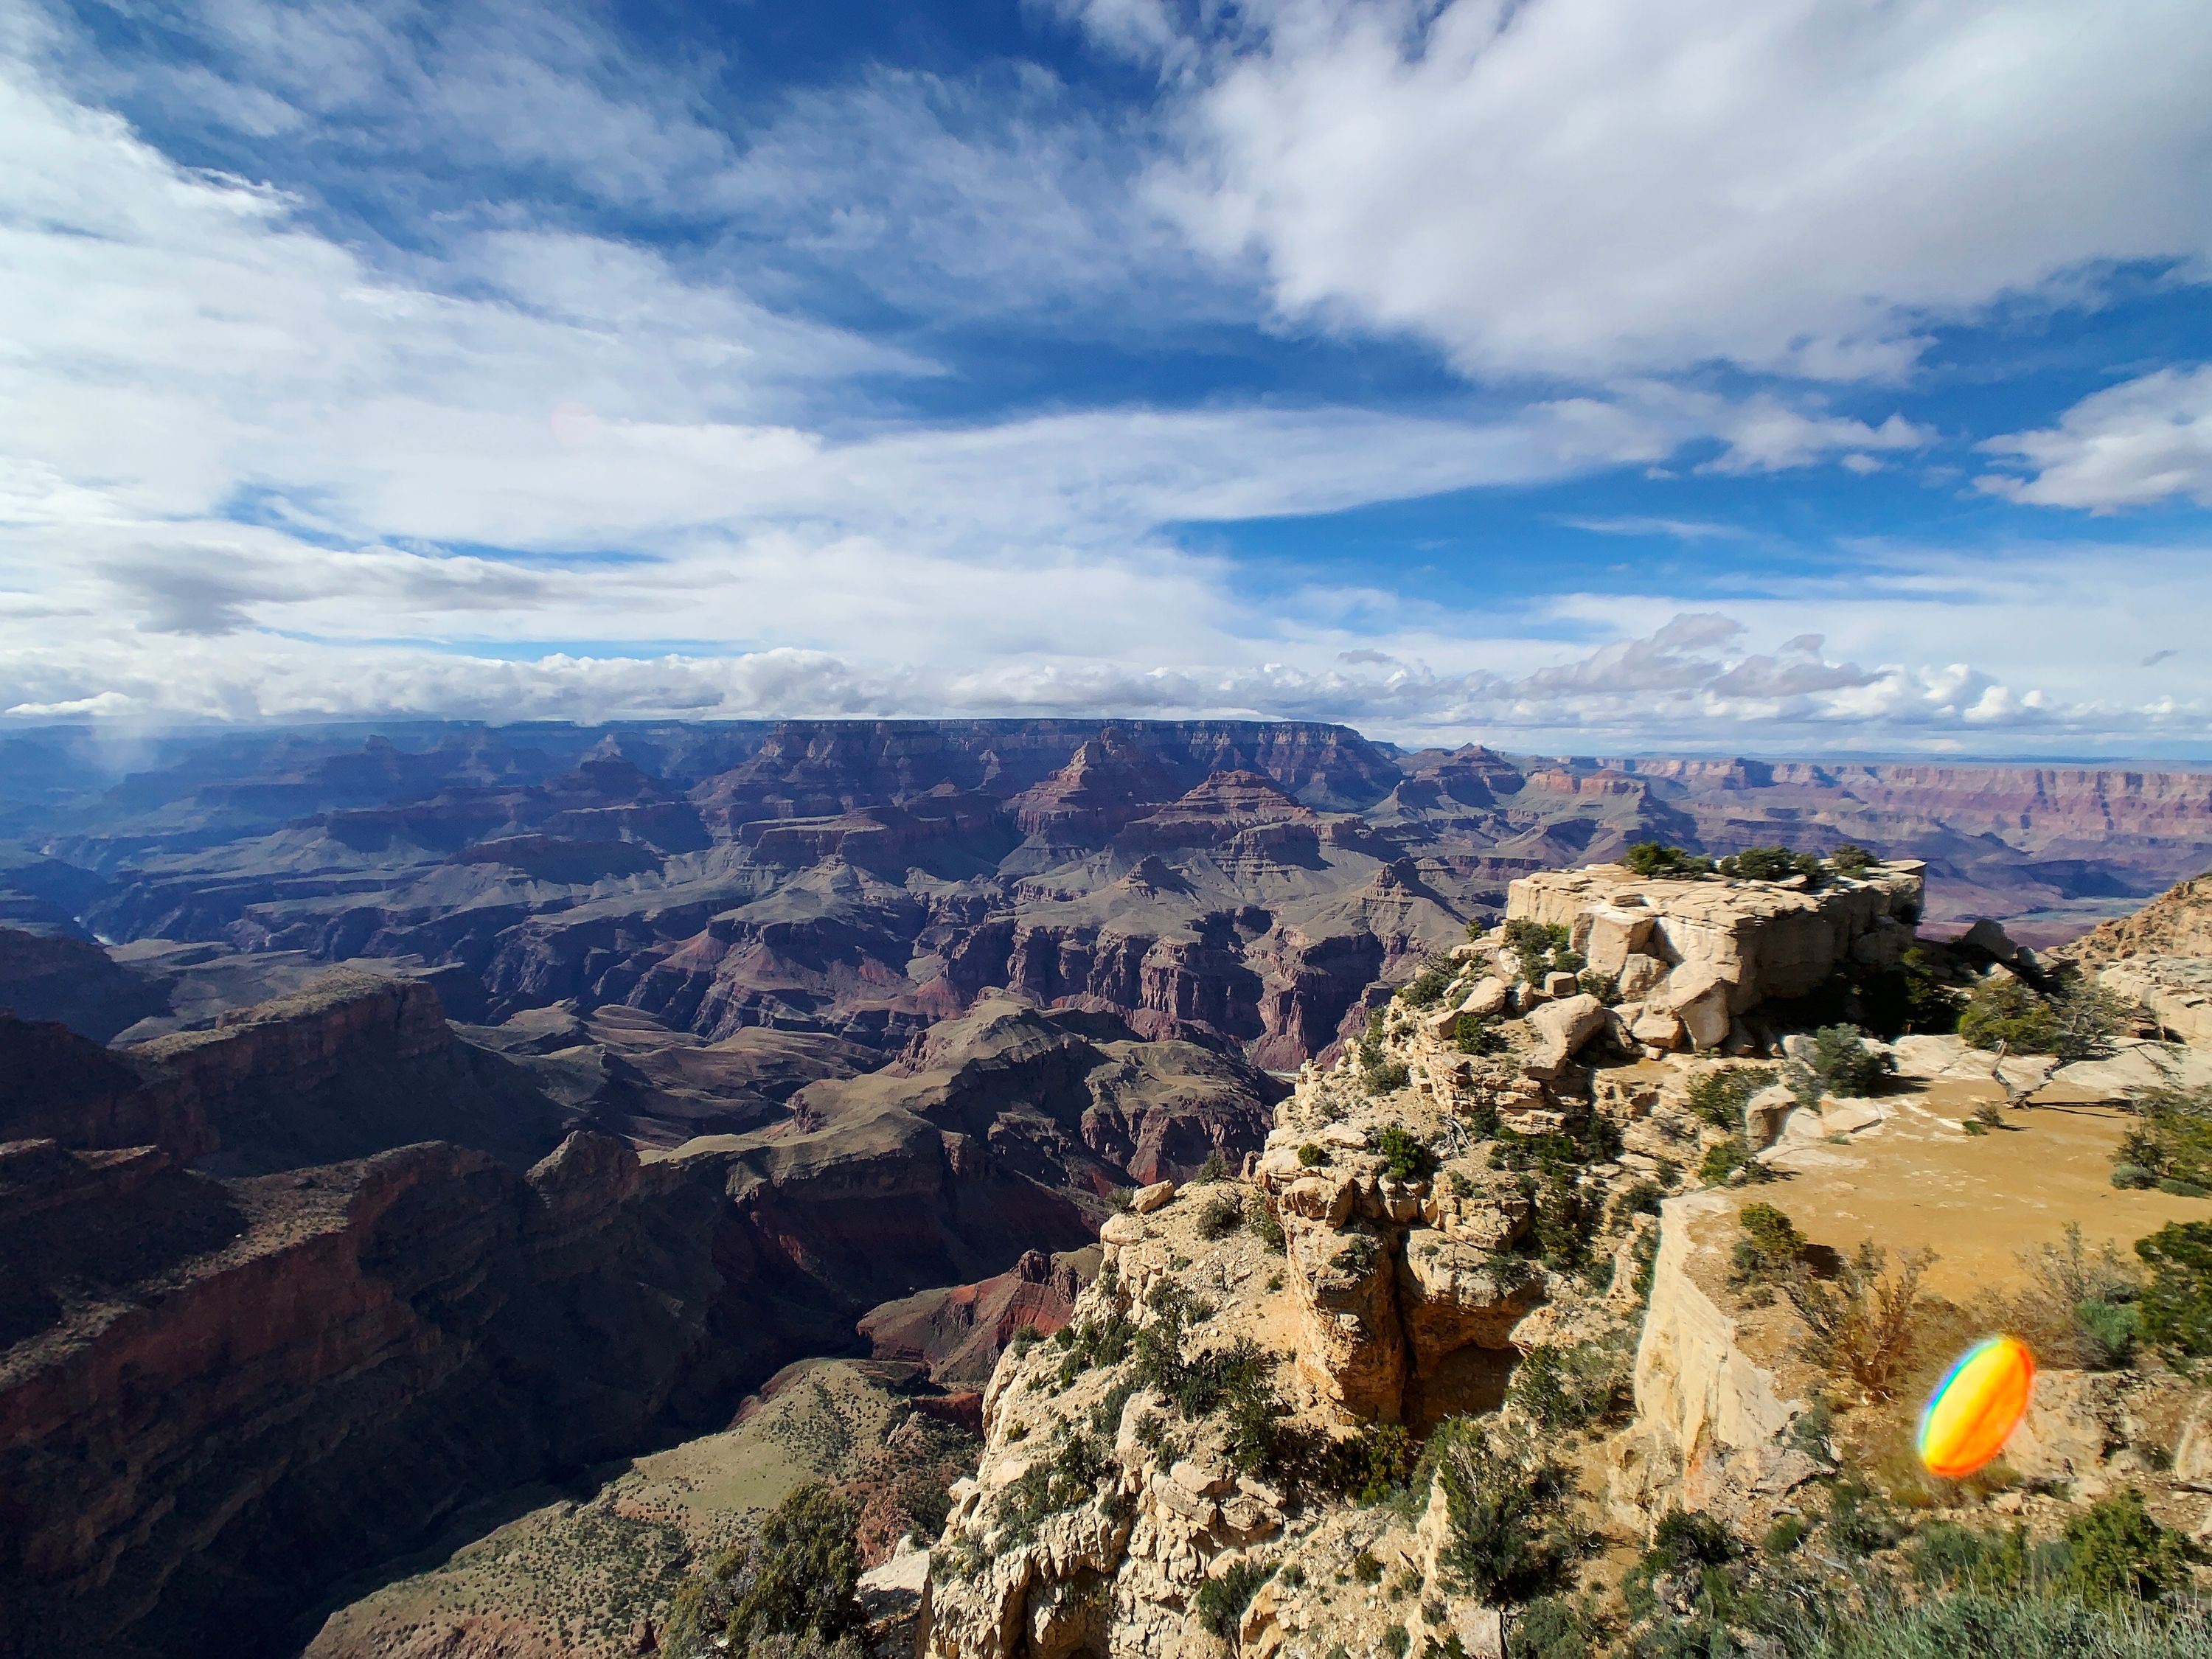 A View of the Grand Canyon near Moran Point